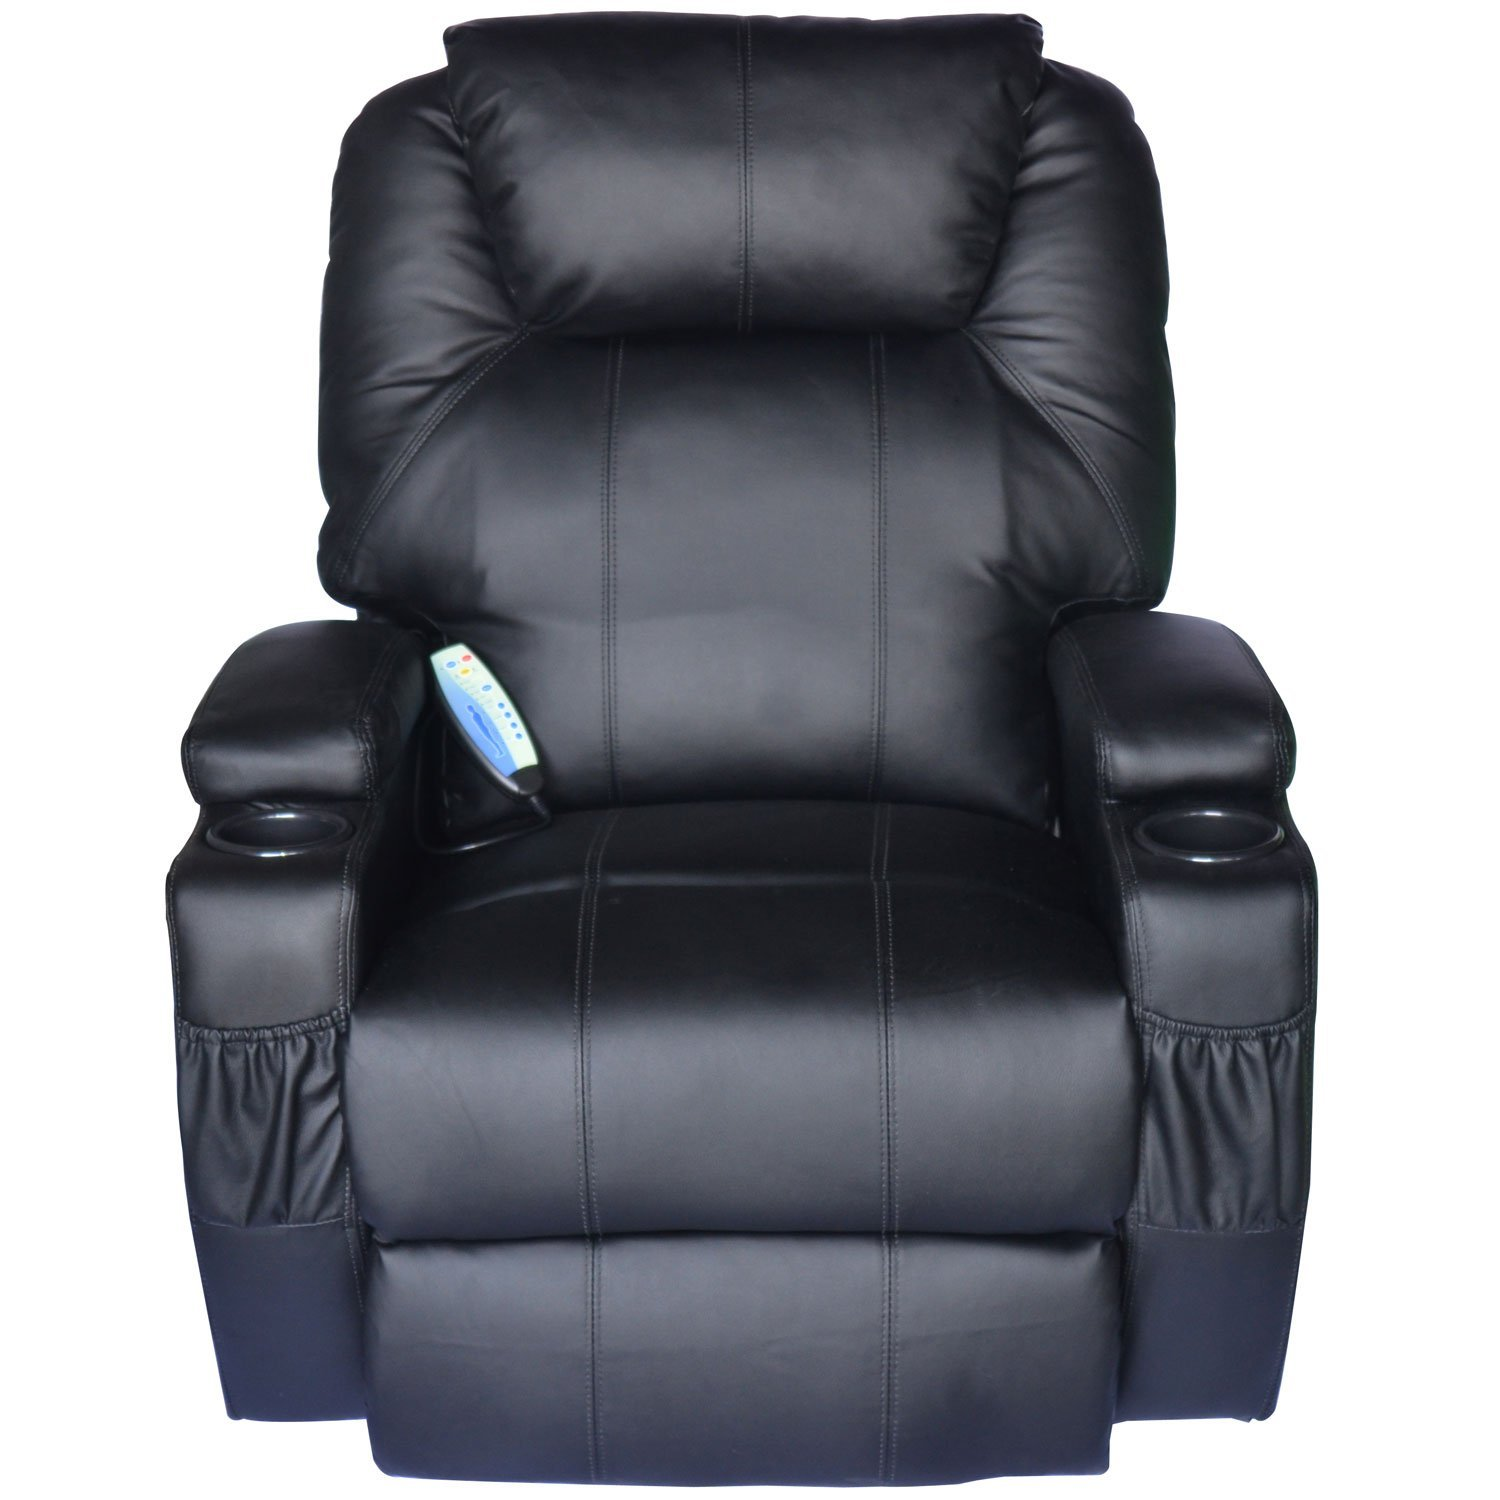 Massage Table & Chairs